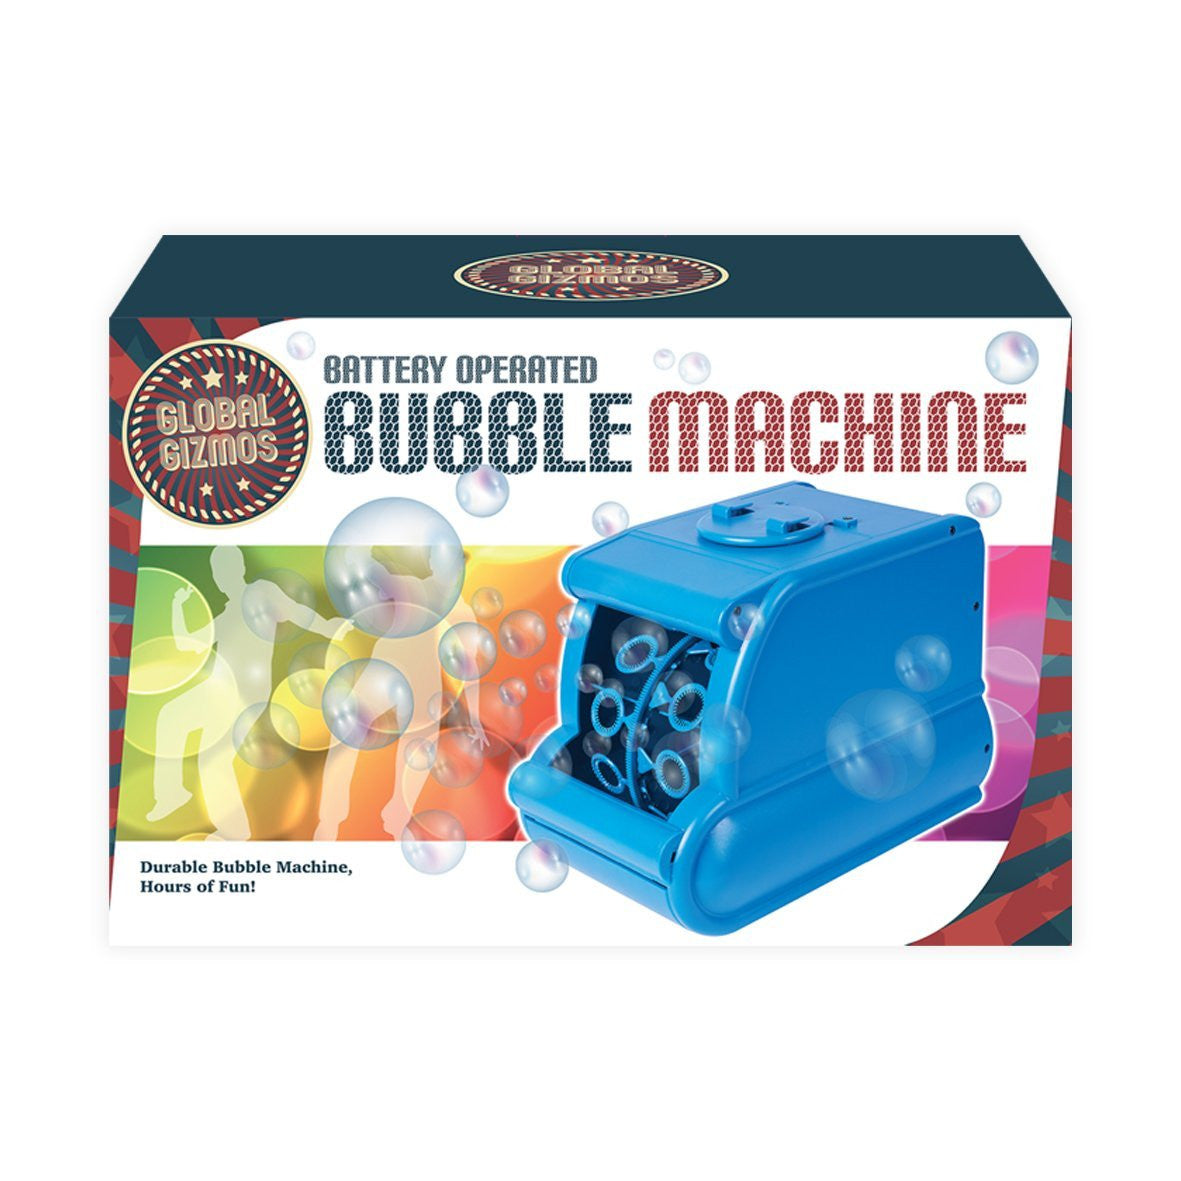 Portable Mini-Pro Bubble Machine - battery or mains! - Bubble Inc